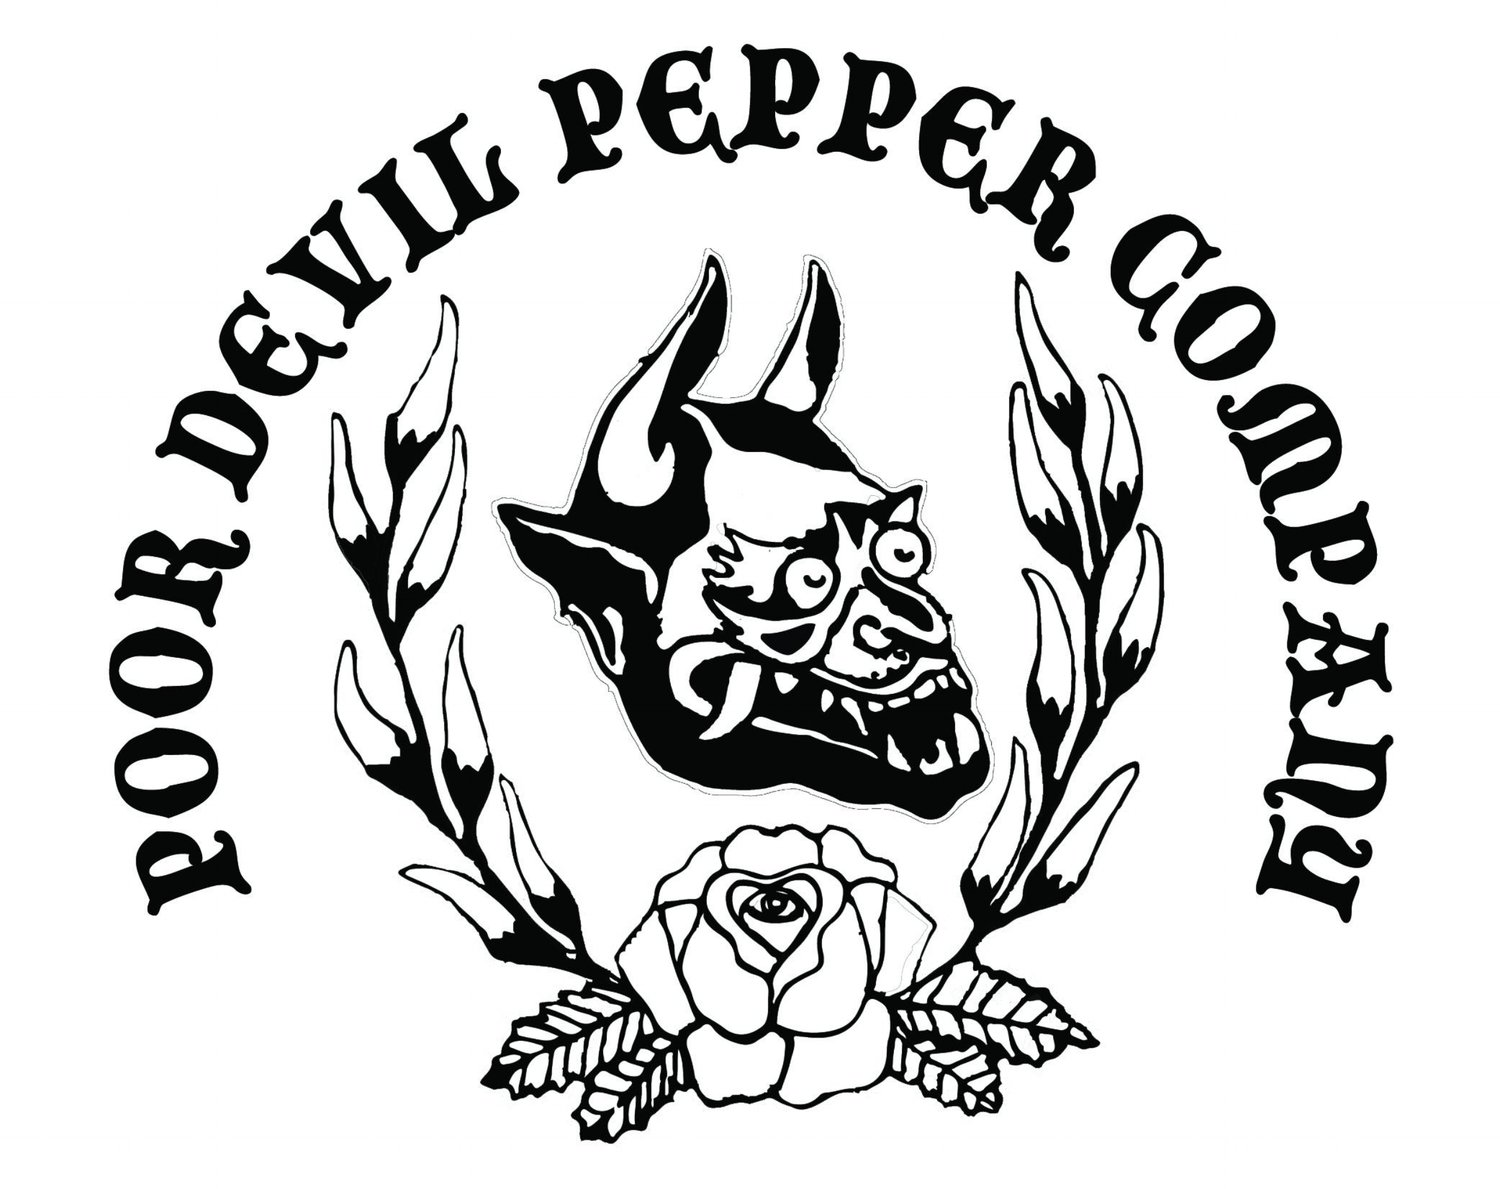 Poor Devil Pepper Co.